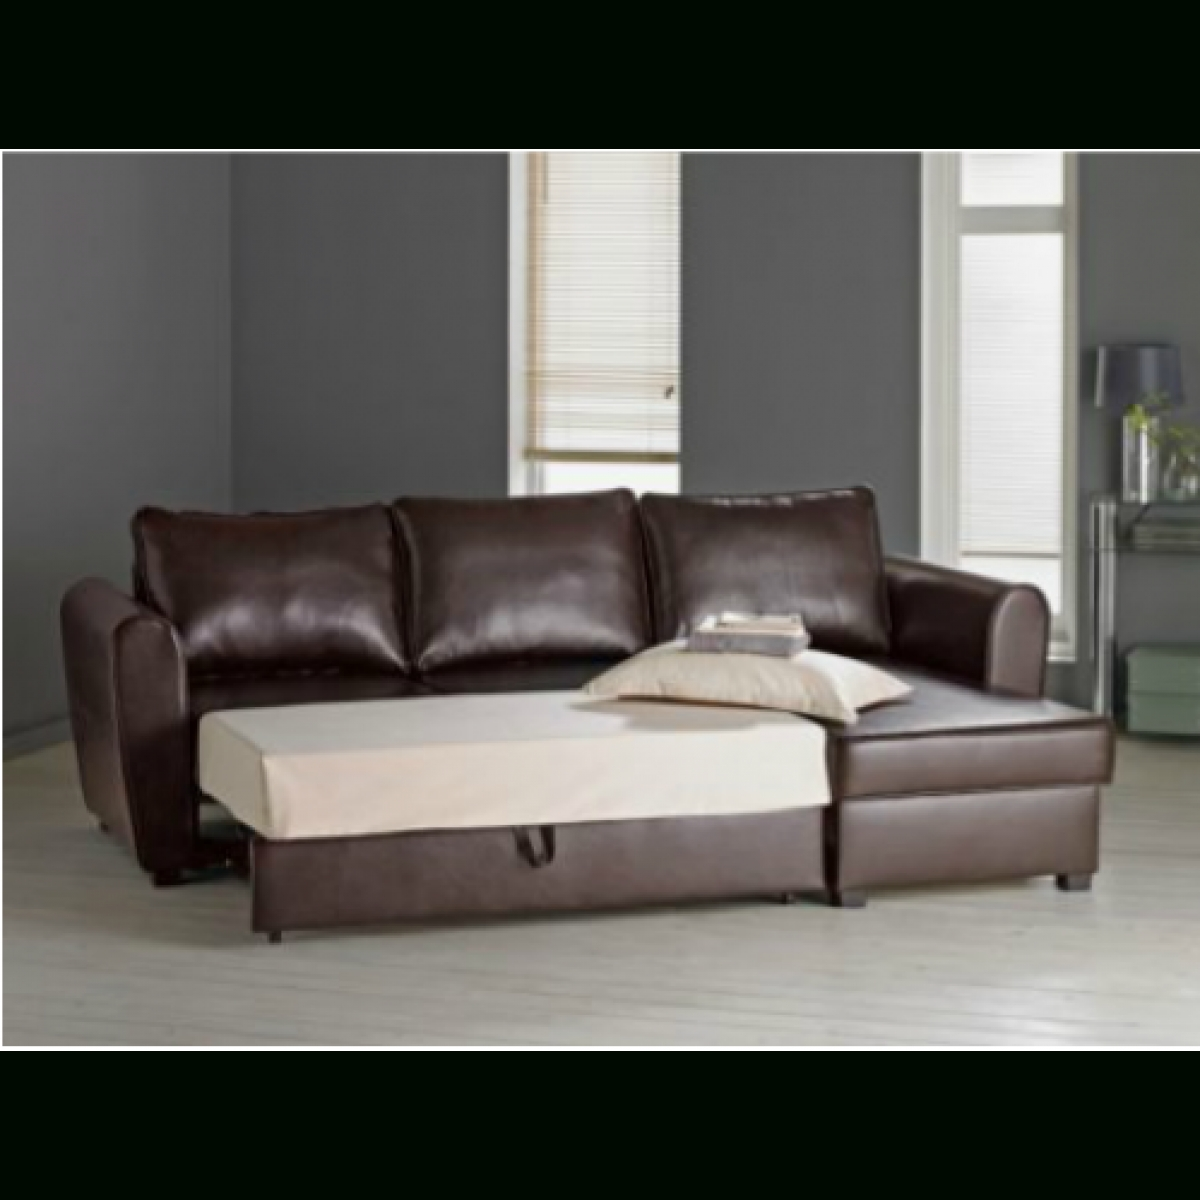 New Siena Fabric Corner Sofa Bed With Storage – Charcoal In Corner Sofa Beds (Image 16 of 20)